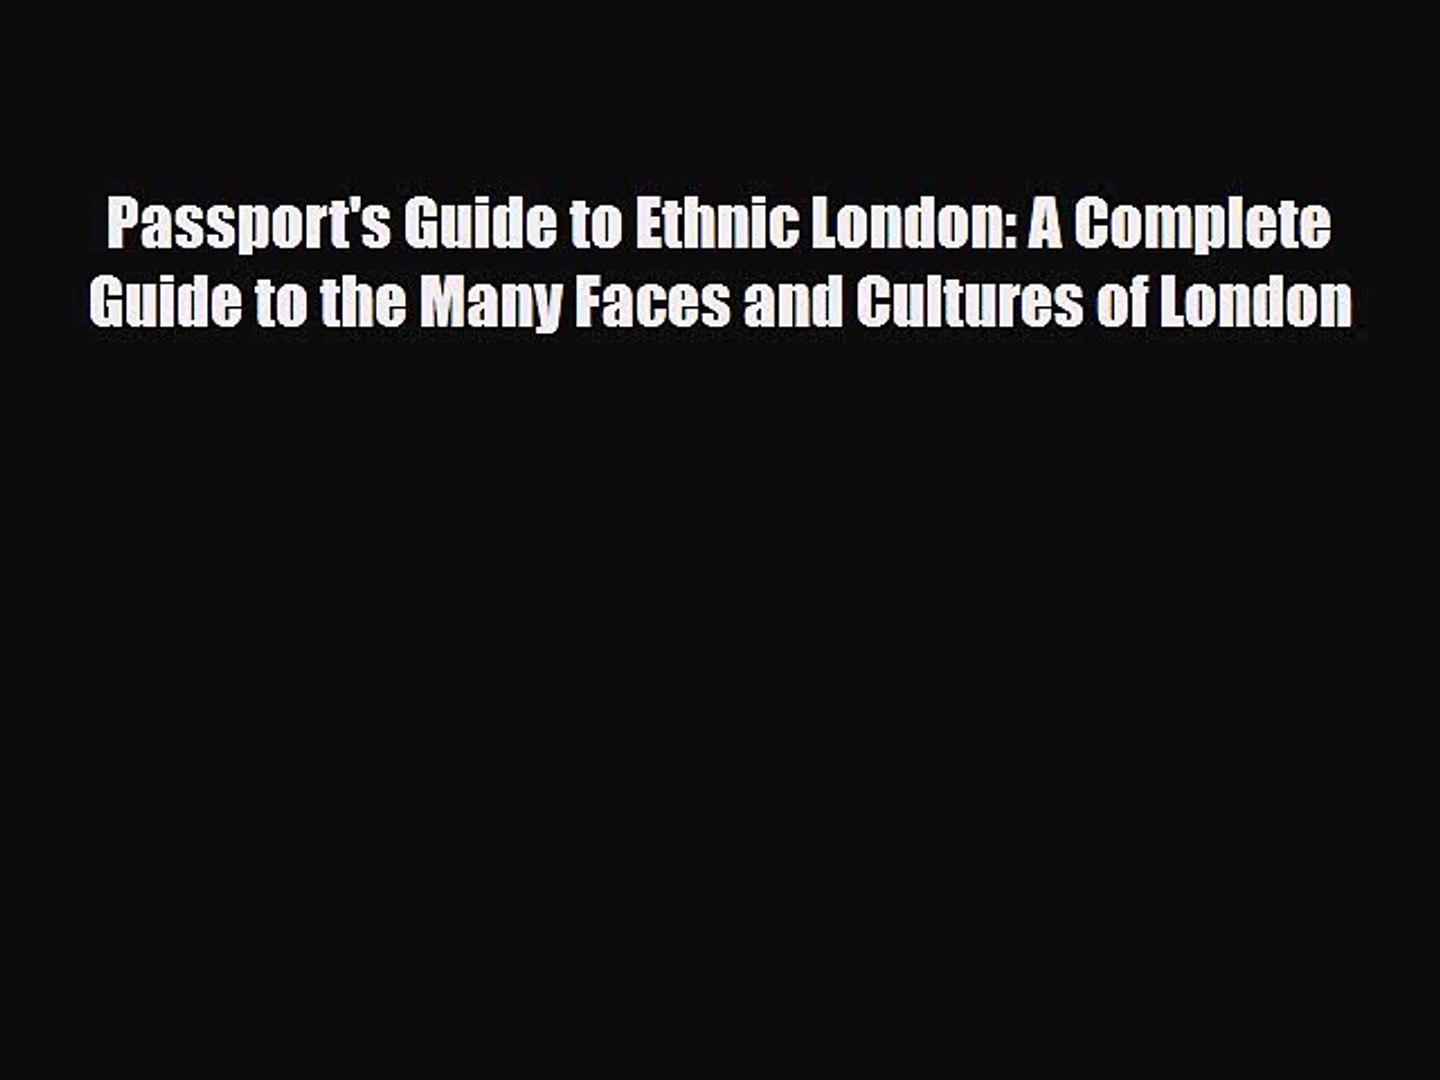 Download Passport's Guide to Ethnic London: A Complete Guide to the Many Faces and Cultures